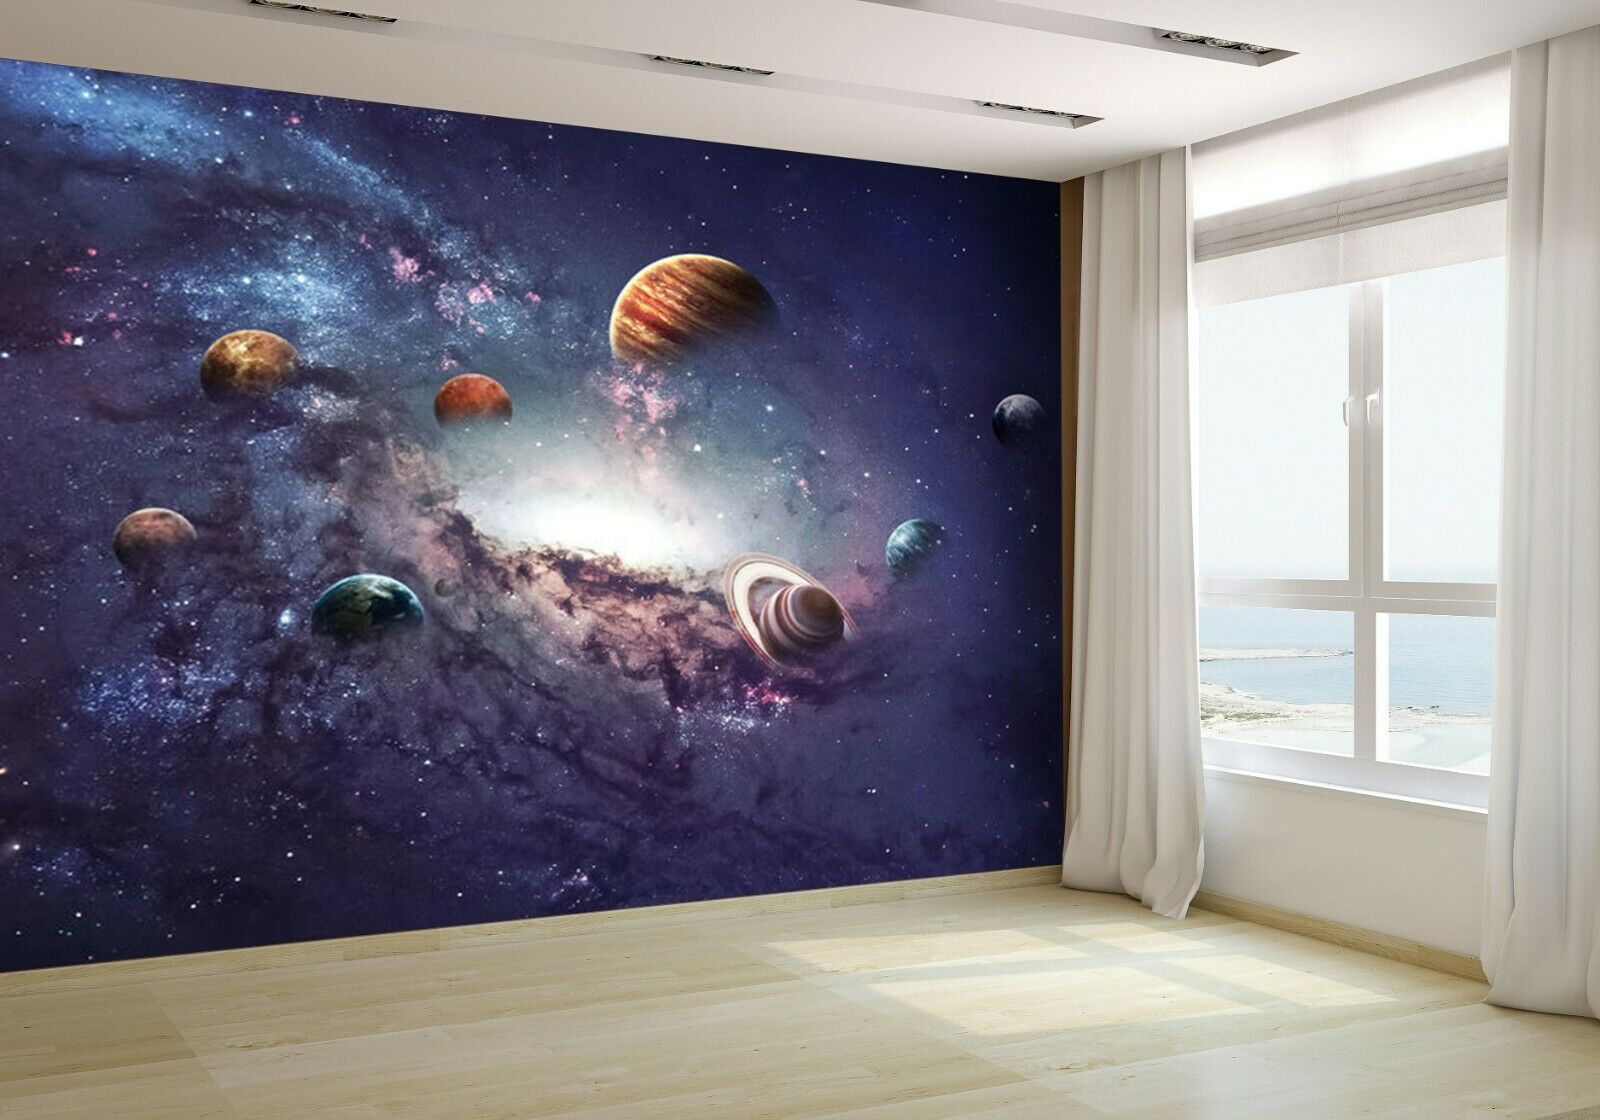 Planets of the Solar System Wallpaper Mural Photo 50430104 budget paper